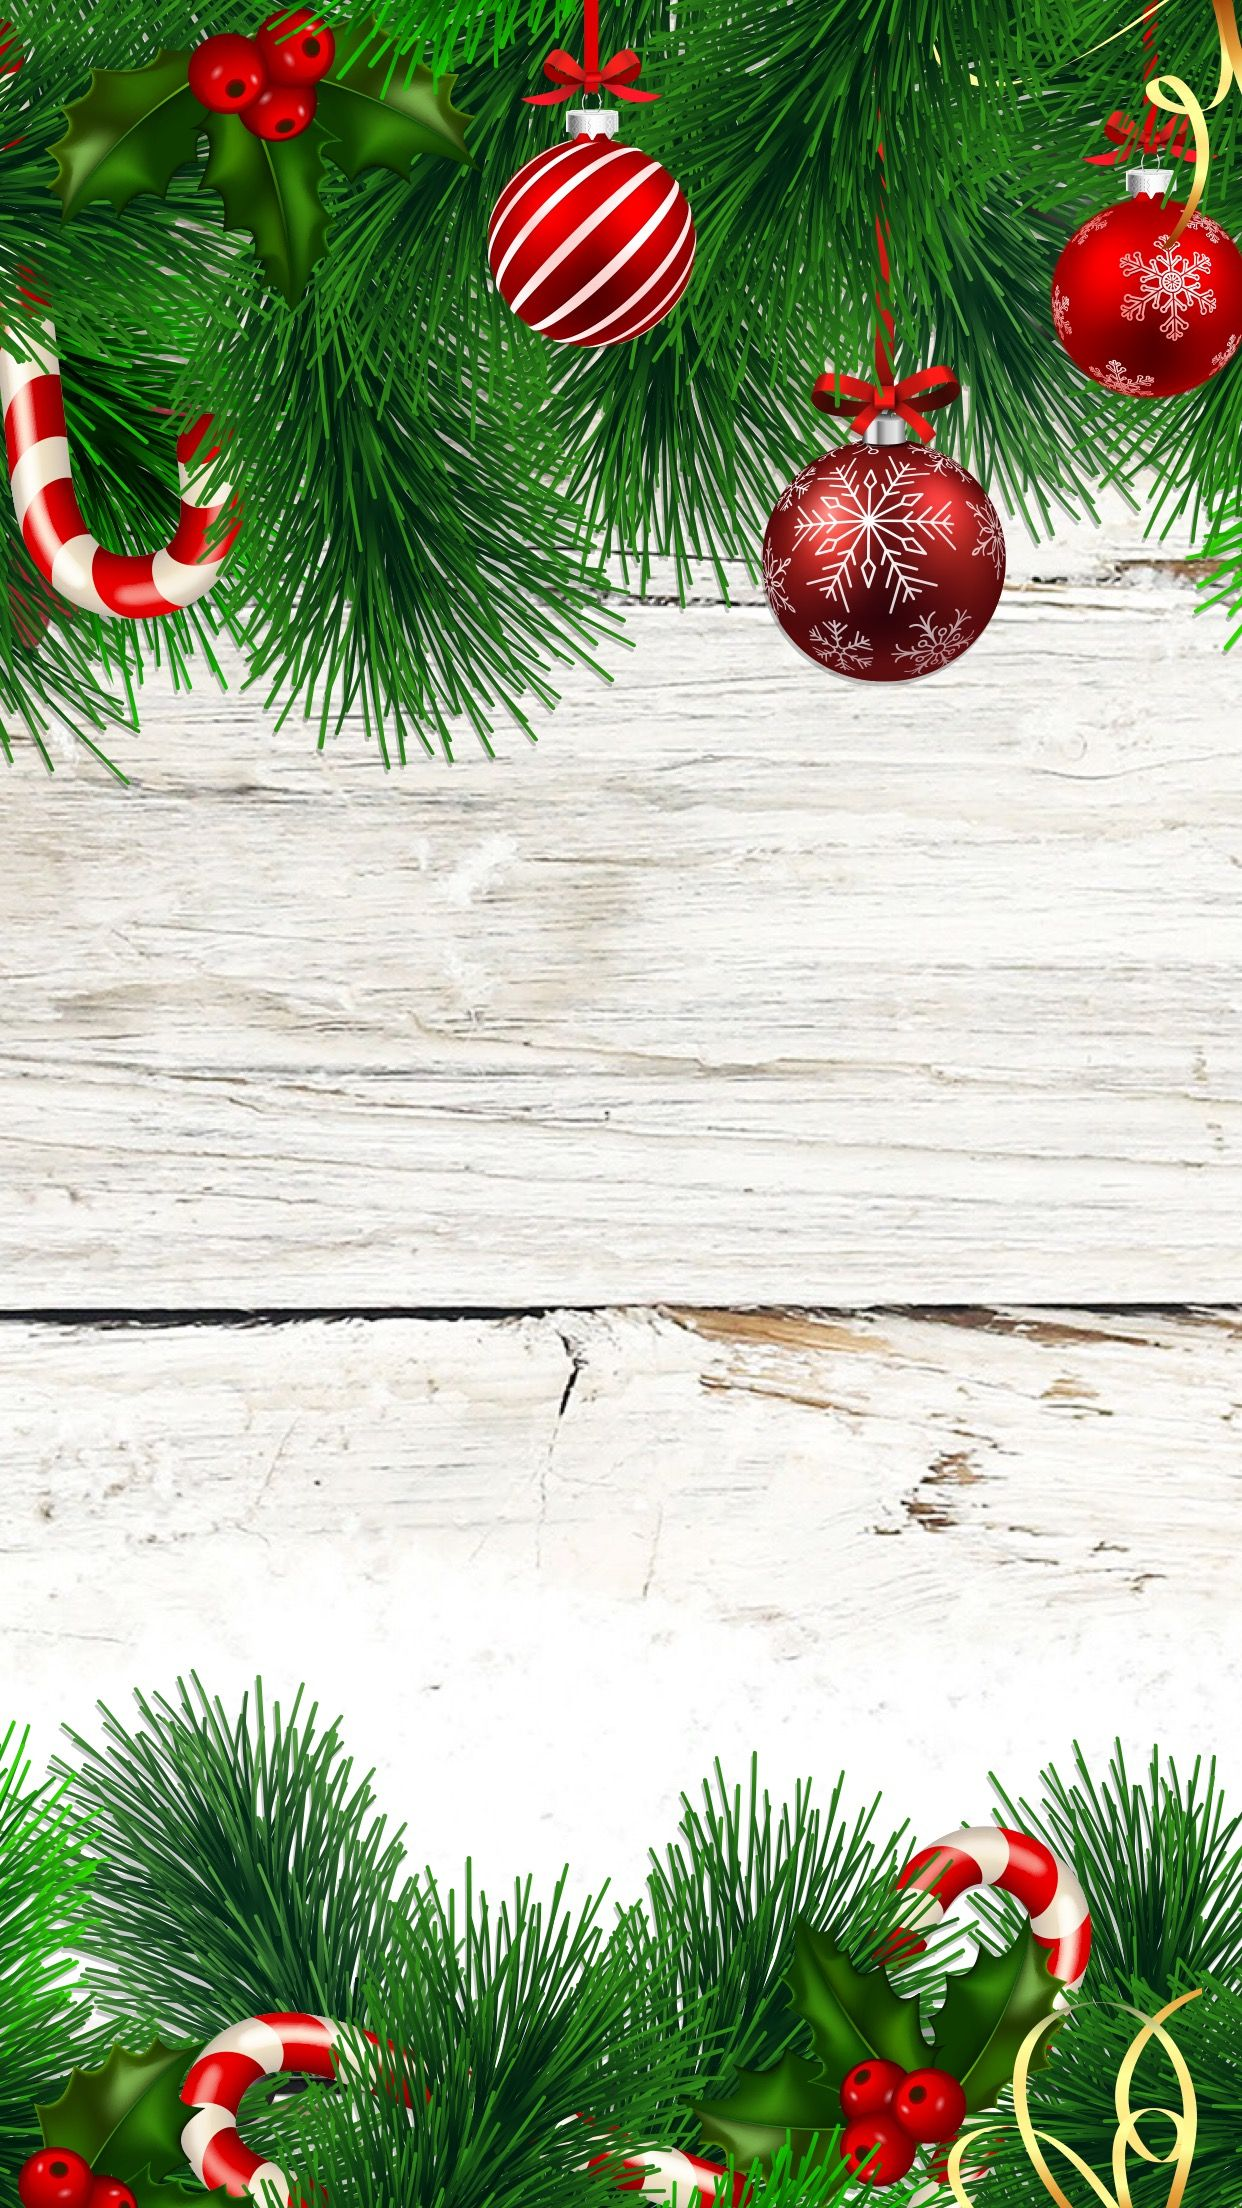 Christmas wallpaper | jackienavidad | Pinterest | Christmas ...